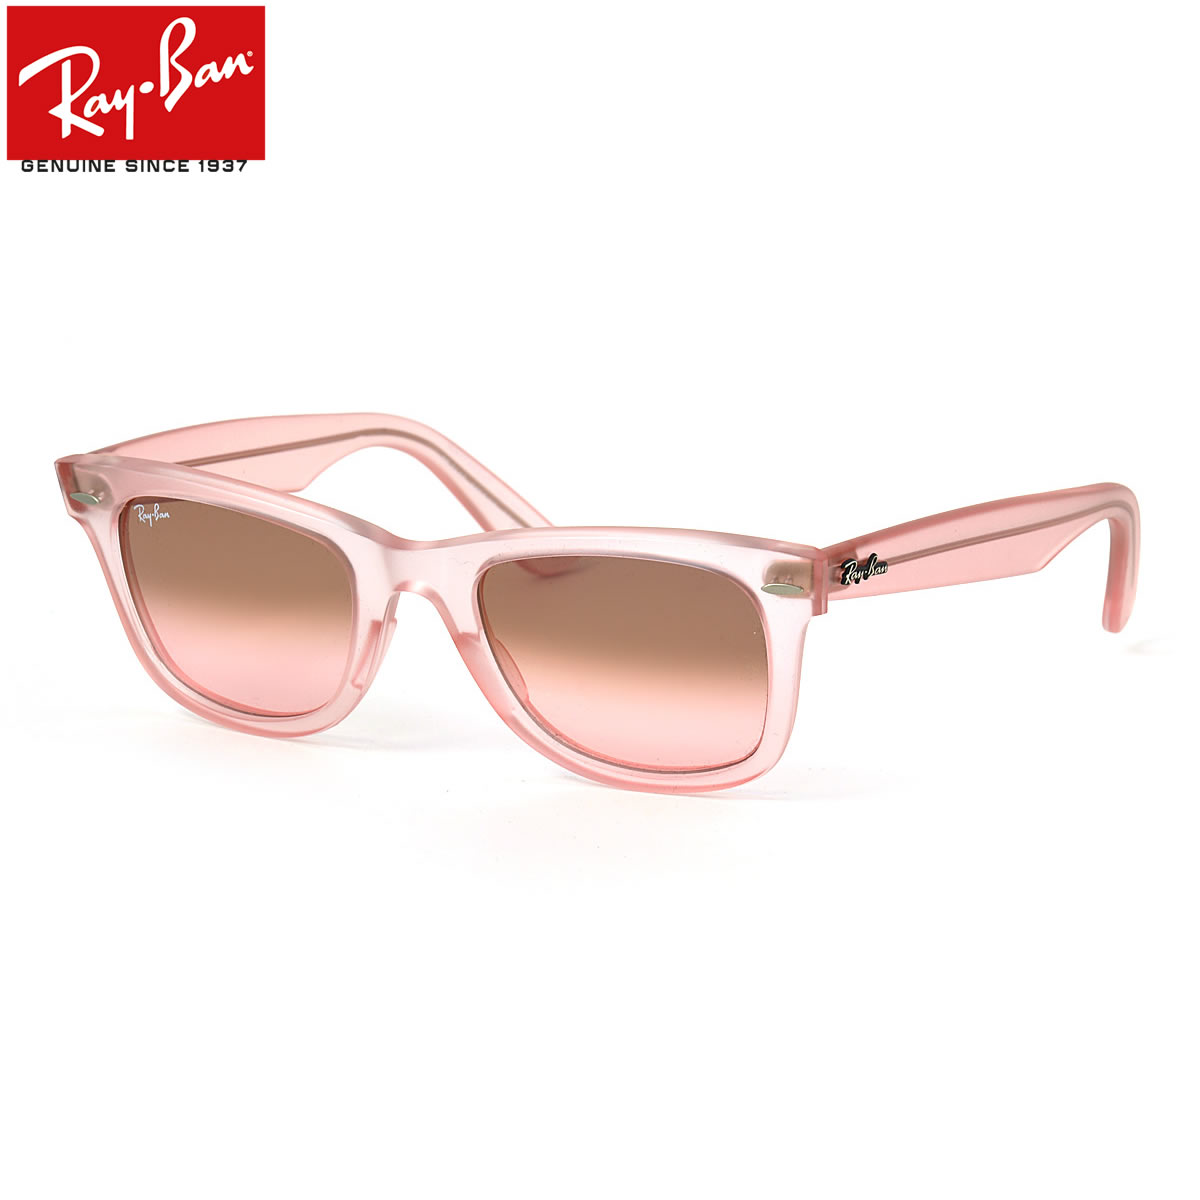 d0284d5319 Ray-Ban sunglasses way Farrar ice pop light control Ray-Ban RB2140 6057 X3  50 size Ray-Ban RAYBAN WAYFARER ICE POP 6057X3 light control lens light  control ...